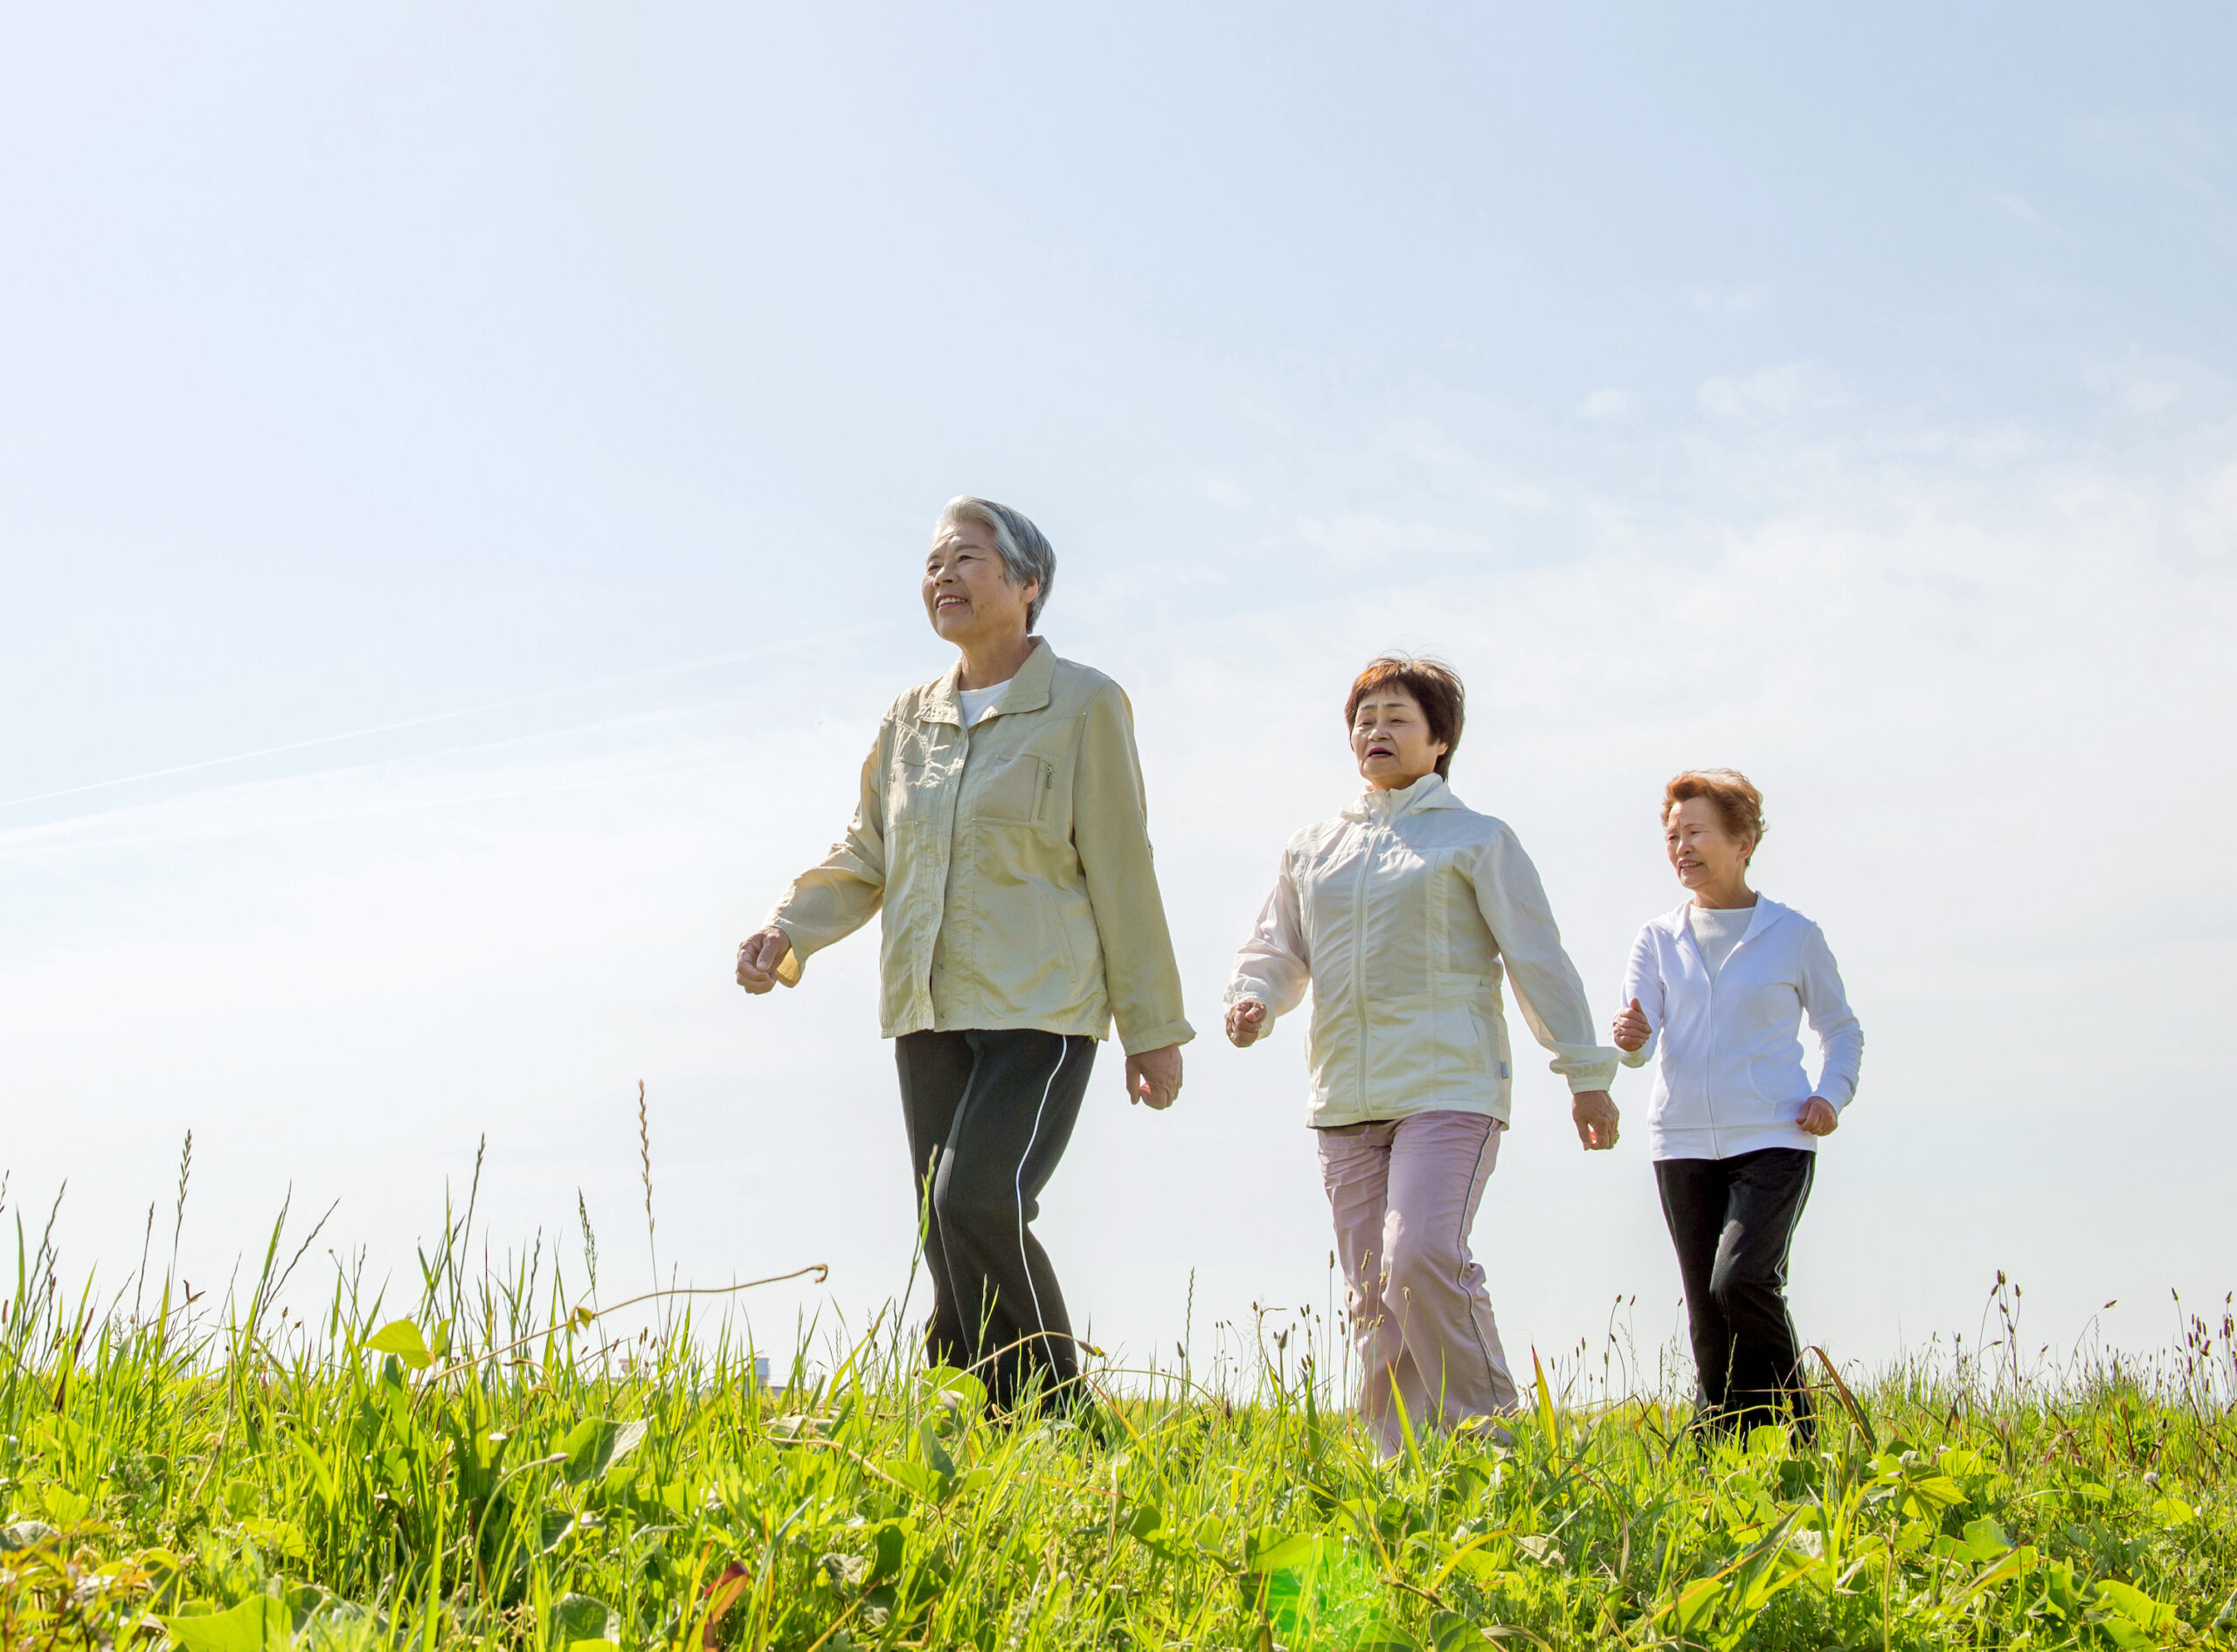 three women, older in age, walking up a grassy hill with blue sky behind them